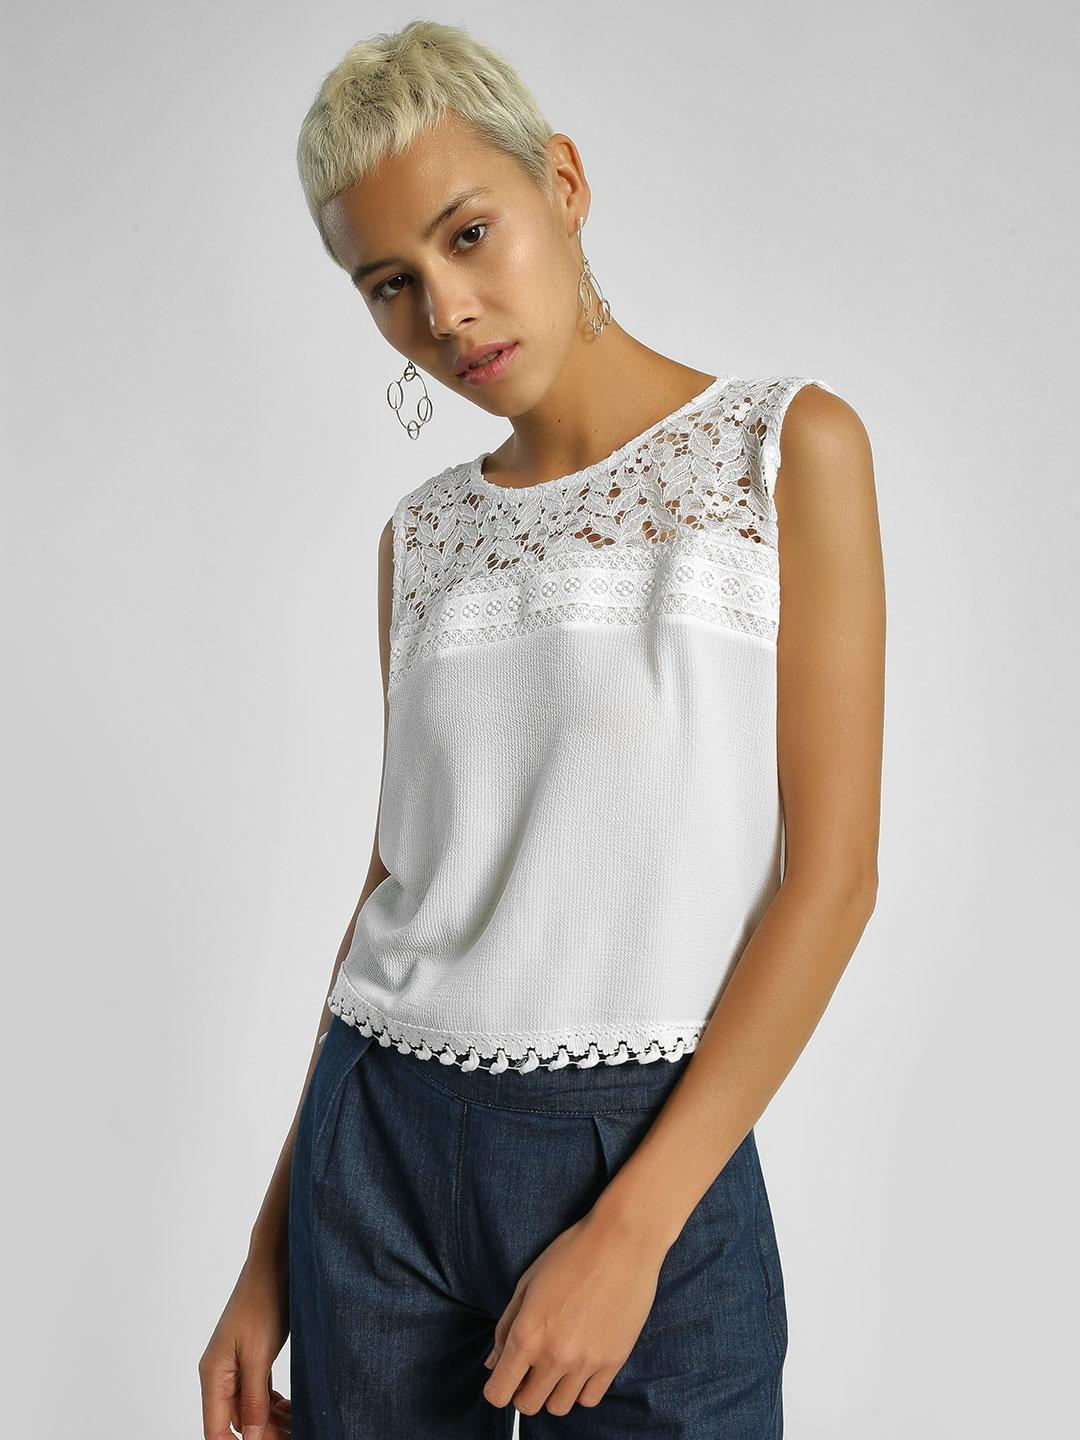 Privy League White Crochet Lace Panel Sleeveless Blouse 1